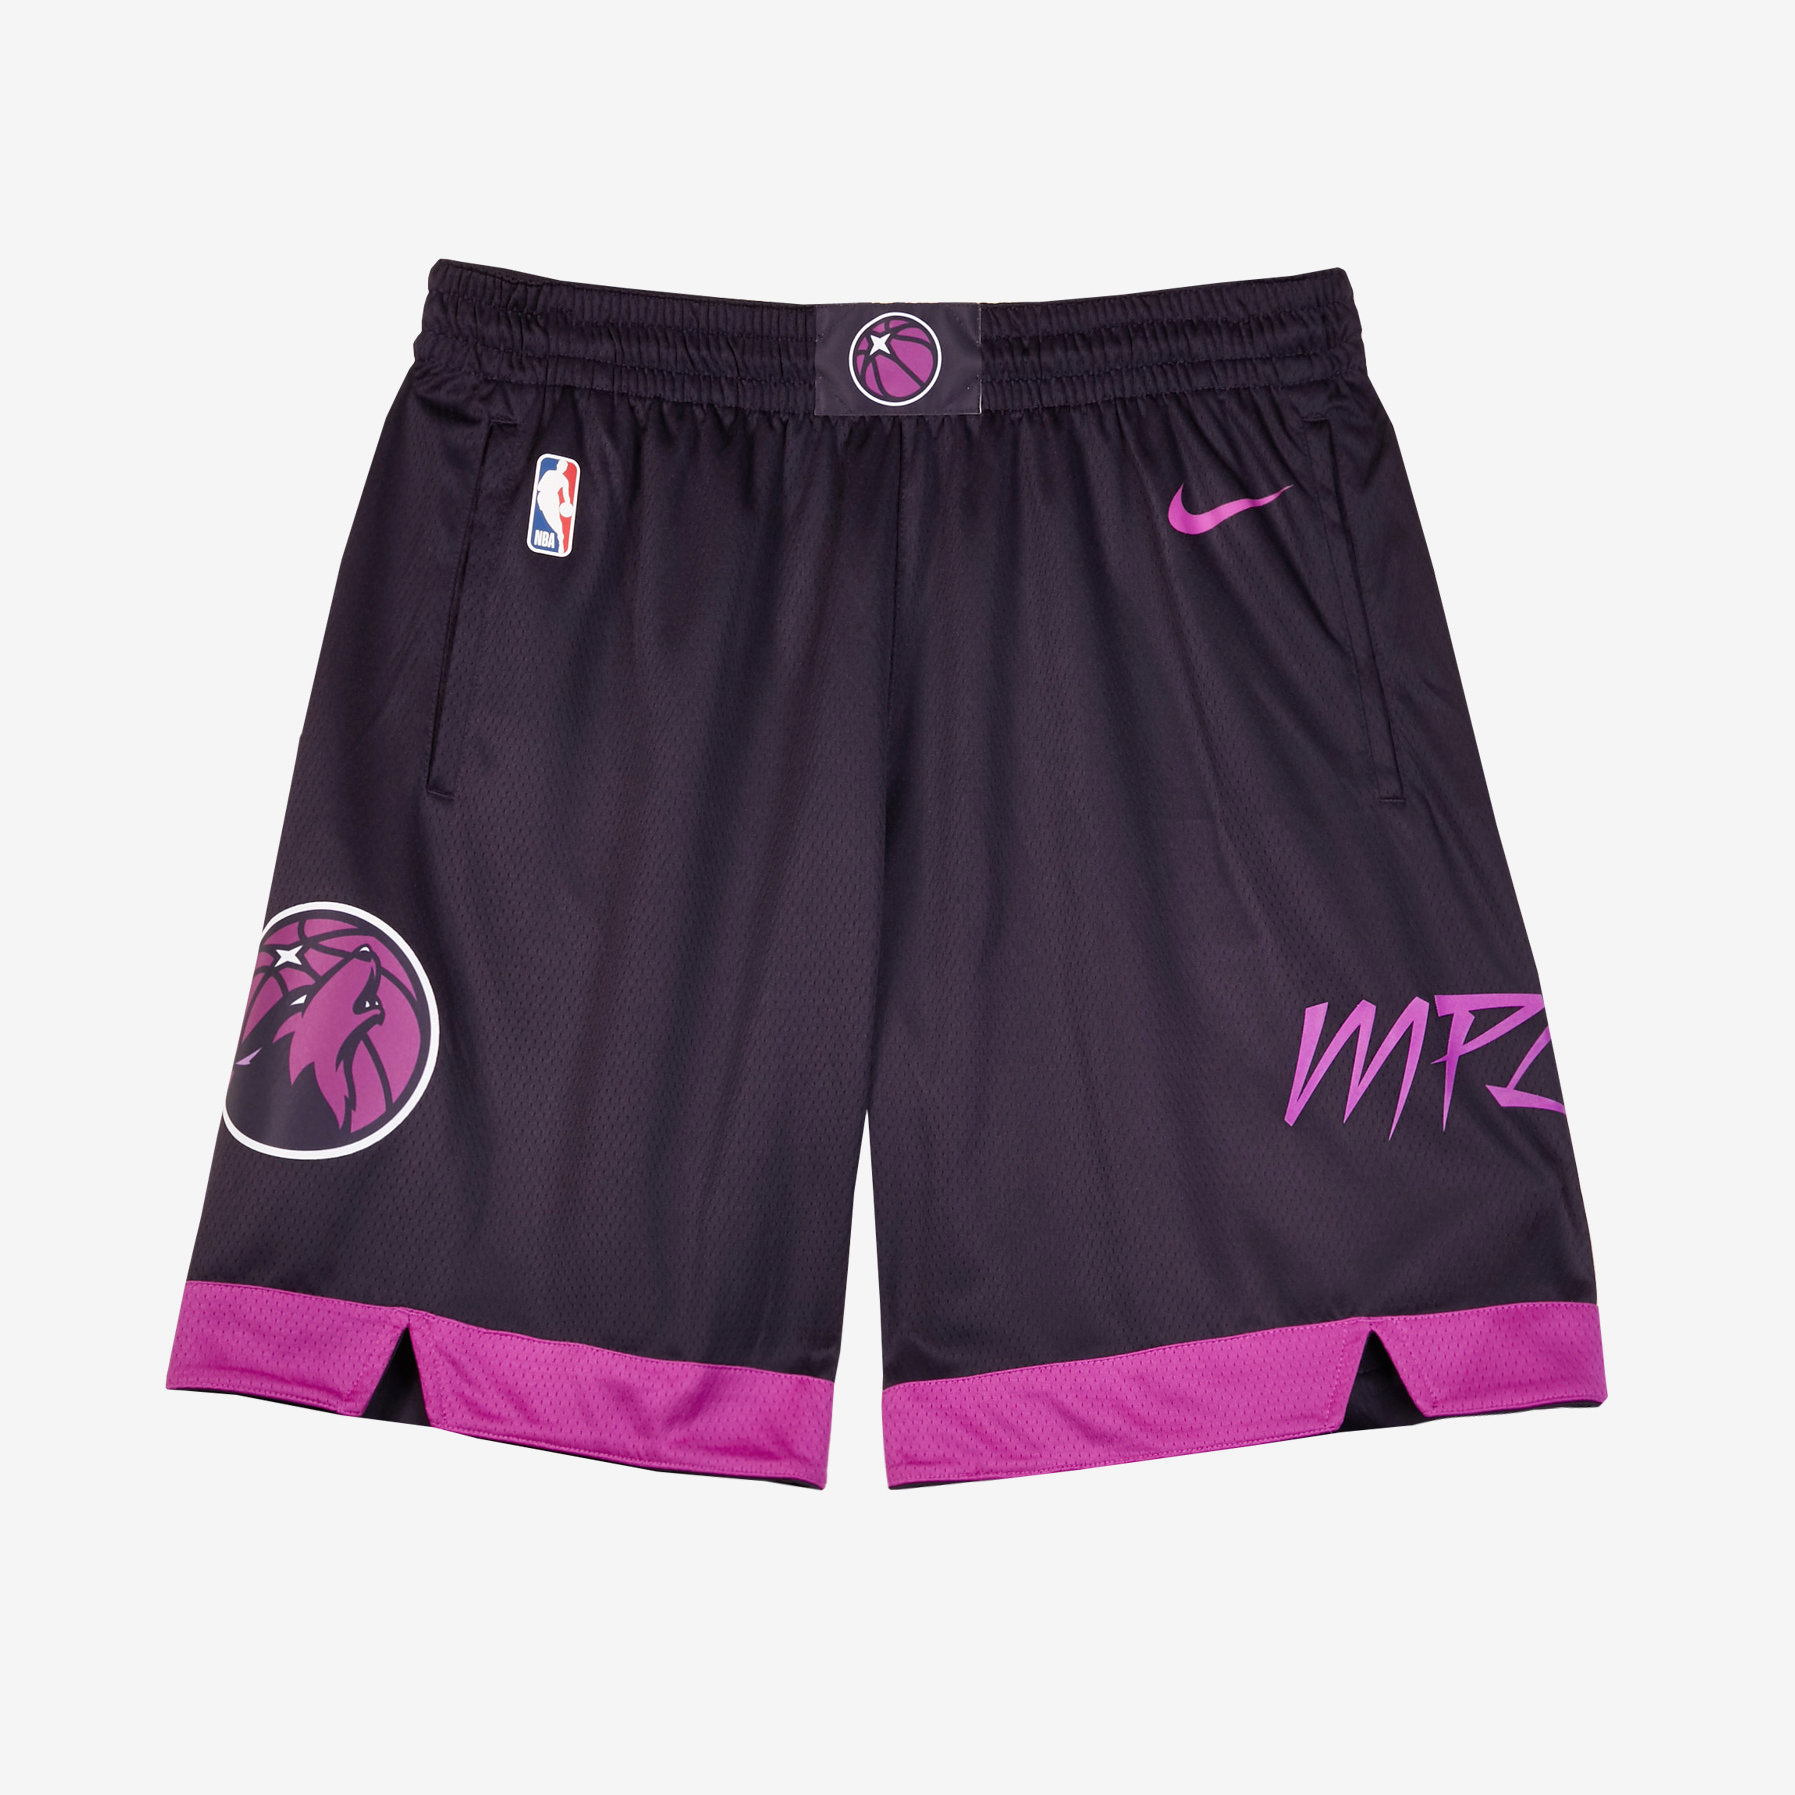 Nike Swingman Short 18 Minnesota Timberwolves 912126 524